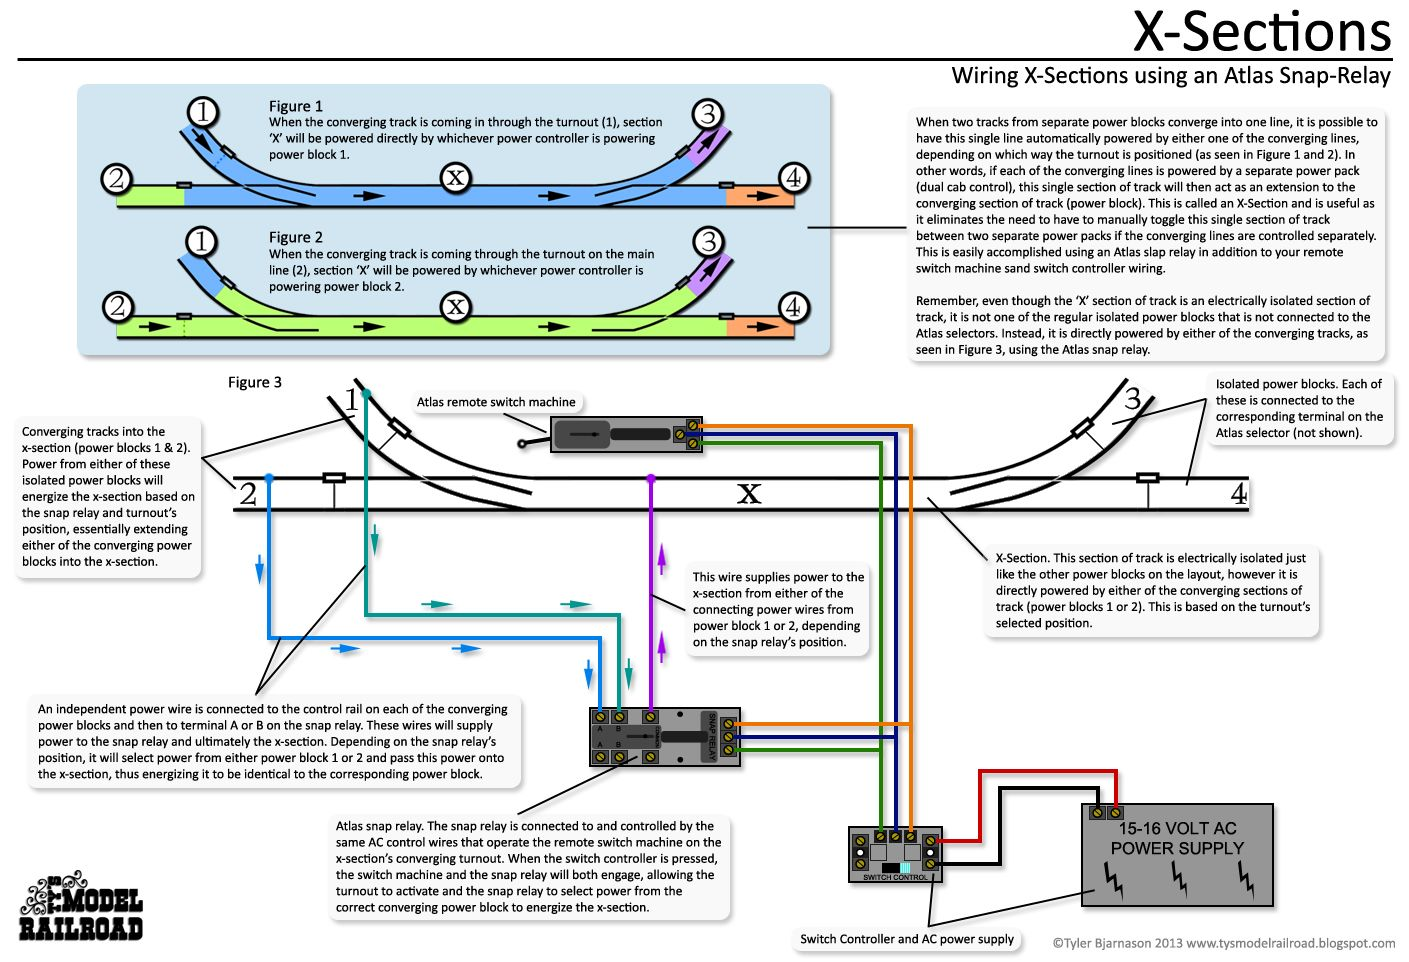 How to wire an x-section using an Atlas snap relay and existing remote  switch machine wiring.